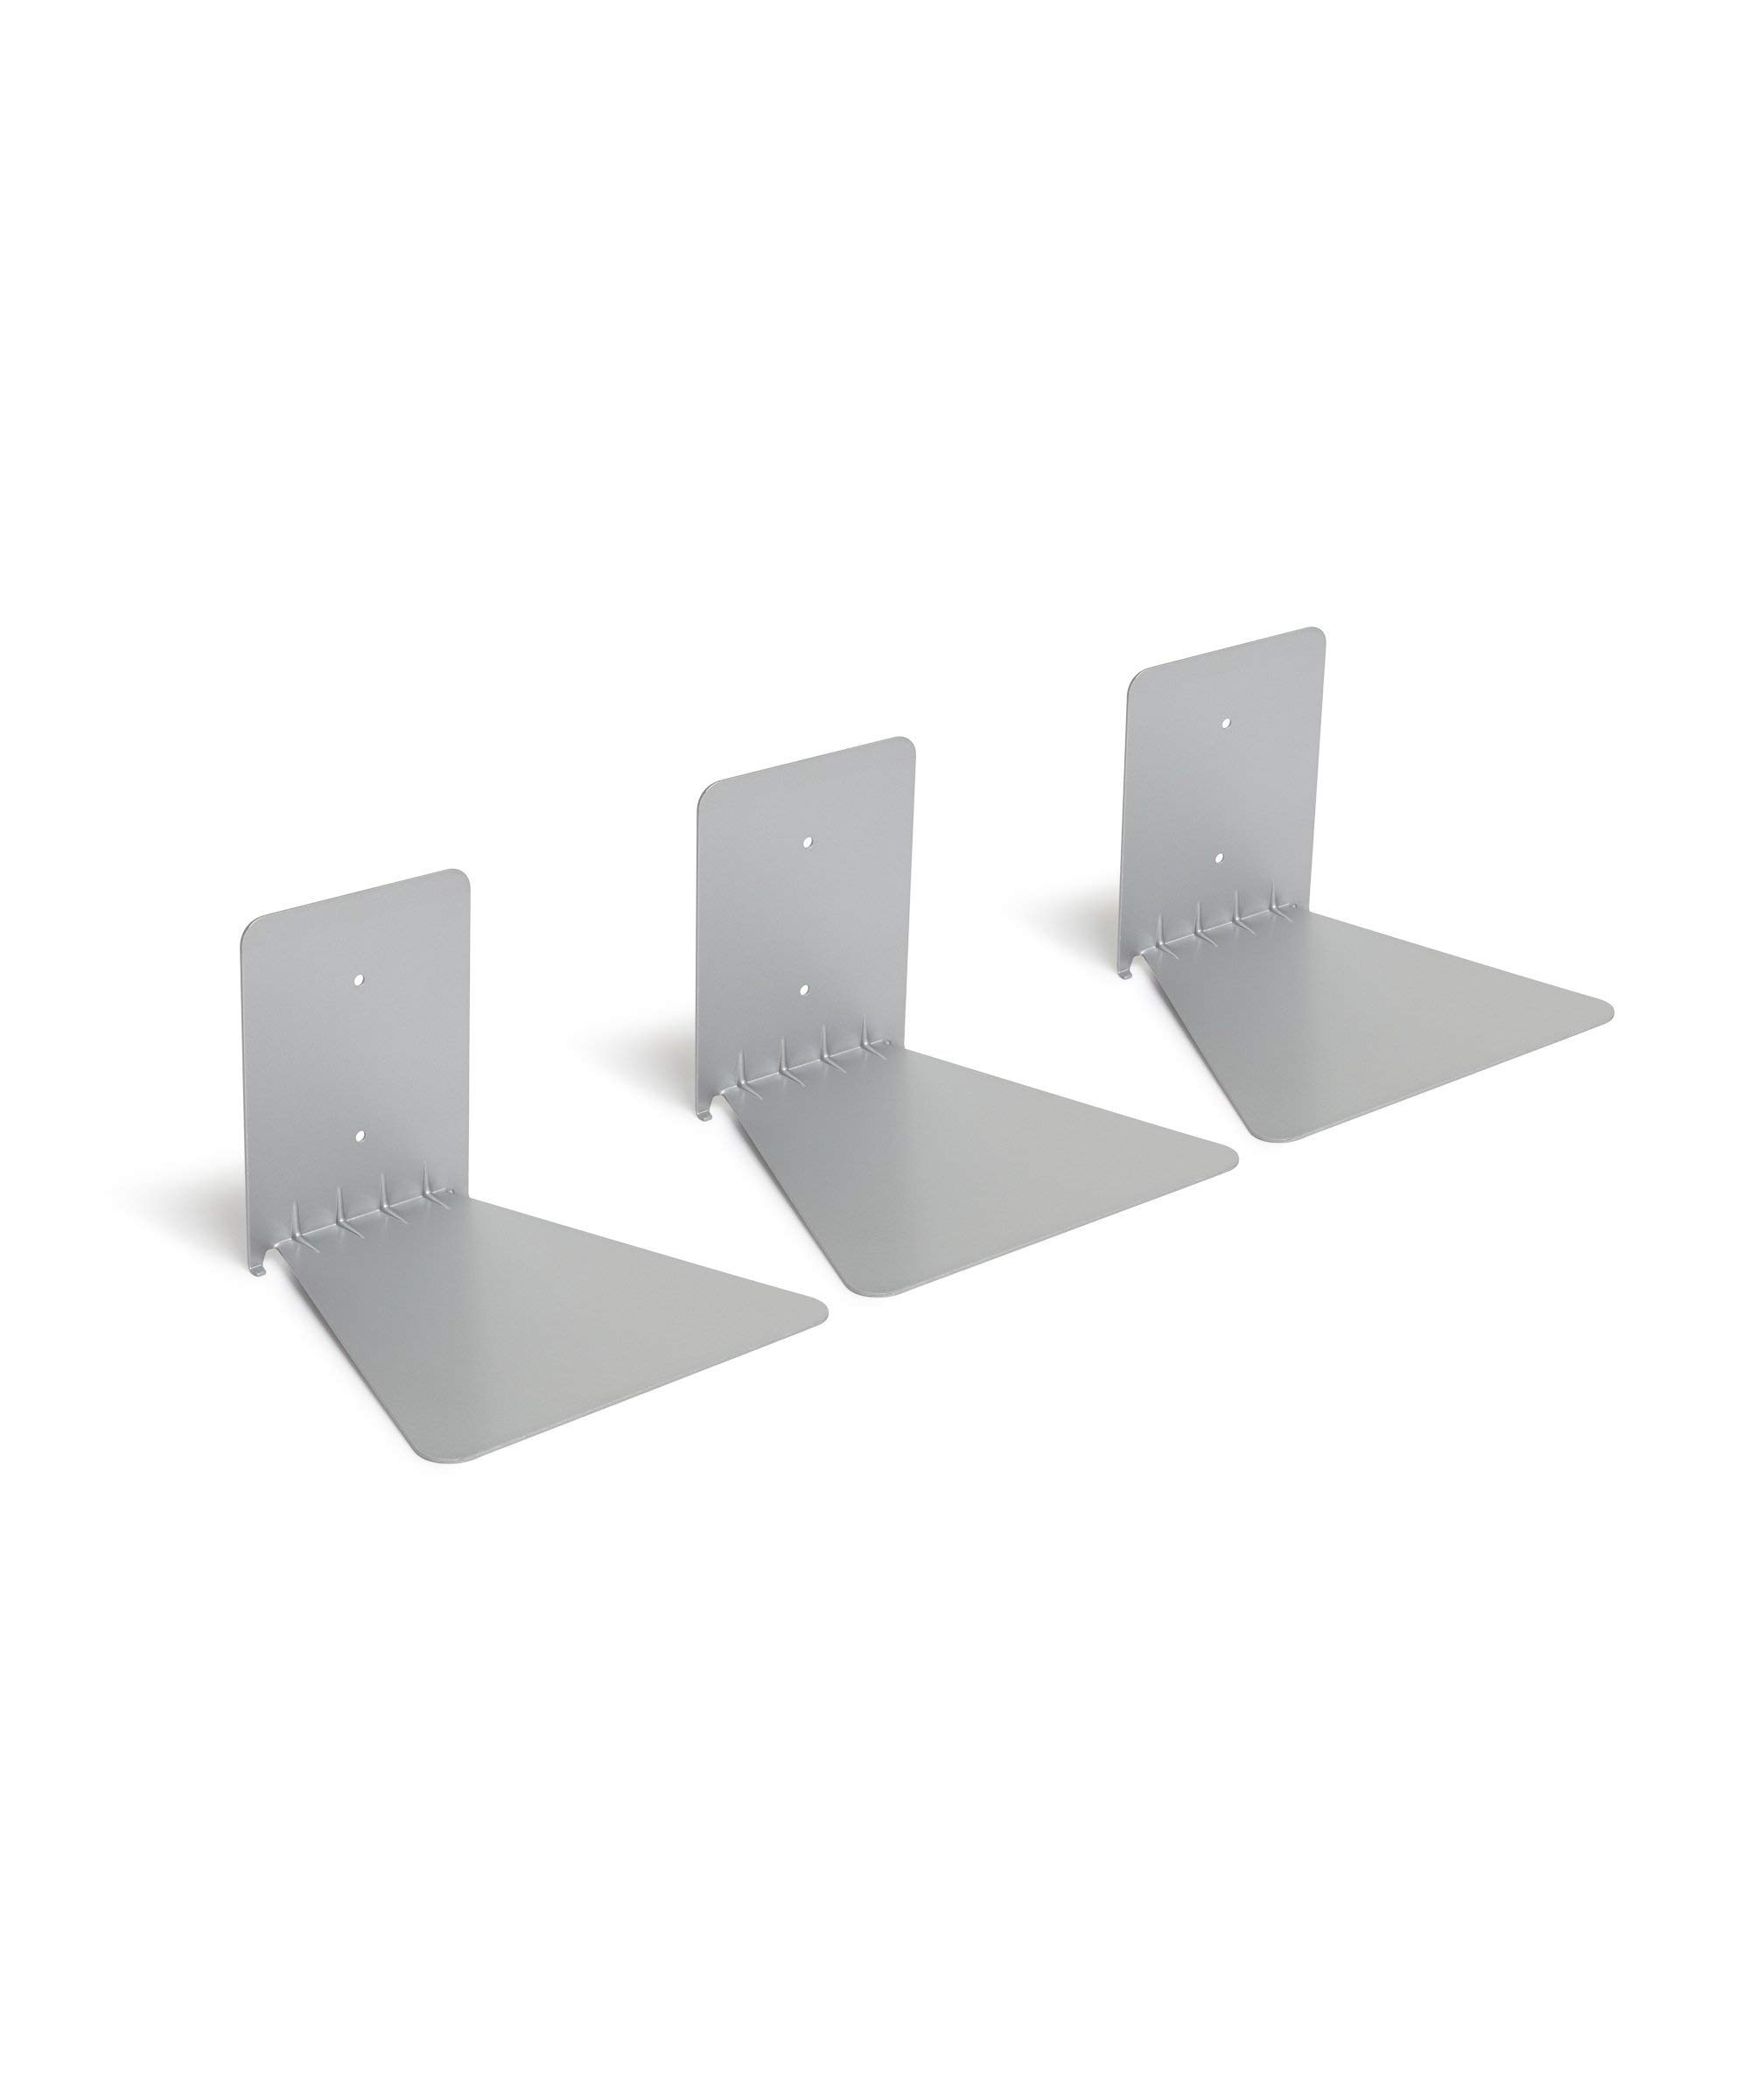 best rated floating shelves helpful customer reviews for books umbra conceal bookshelf large silver set carved wood wall art decor inch shelf unit where can find desk multimedia